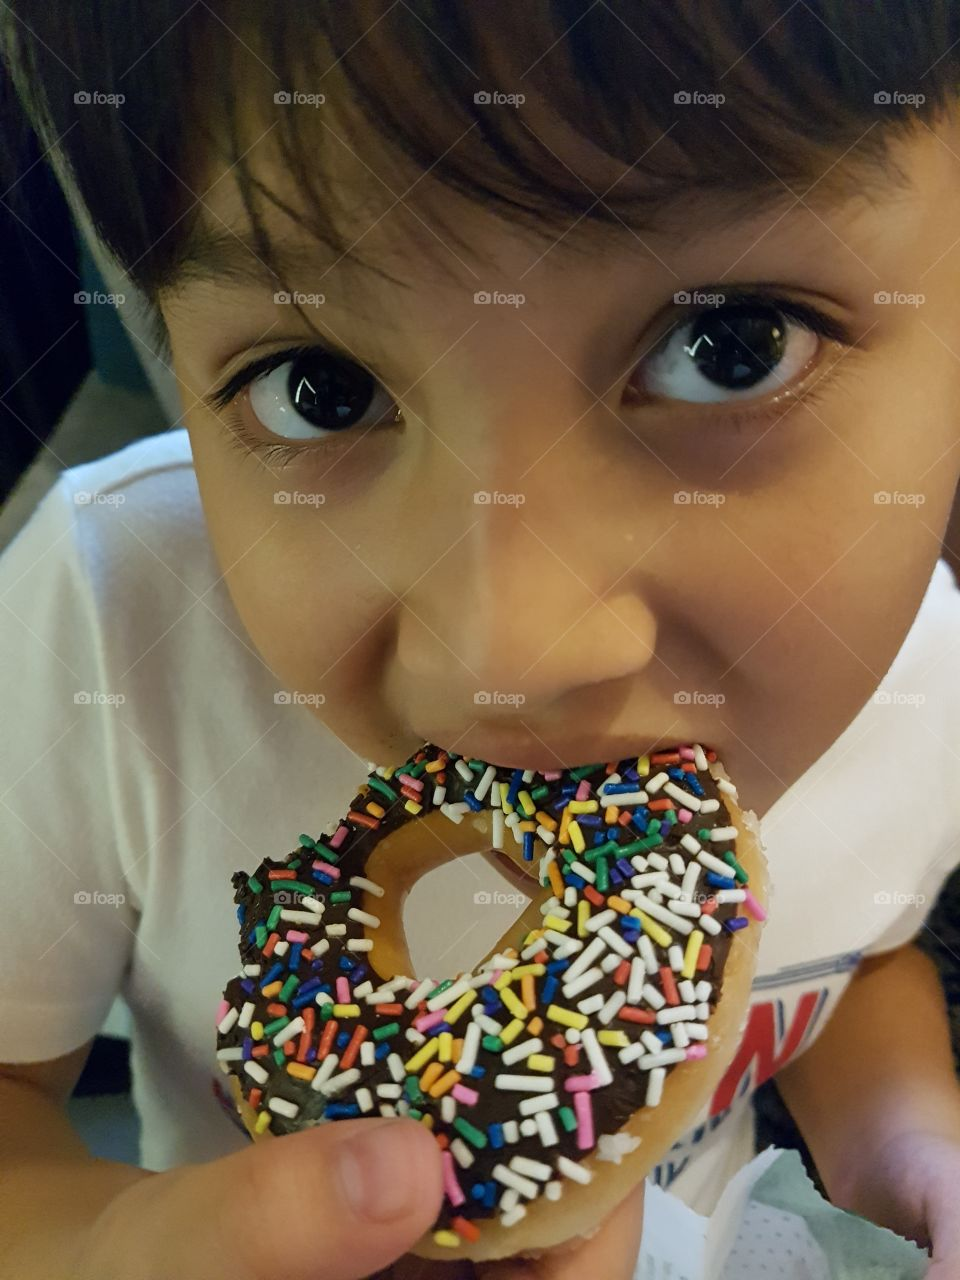 kid eating donut looking at camera